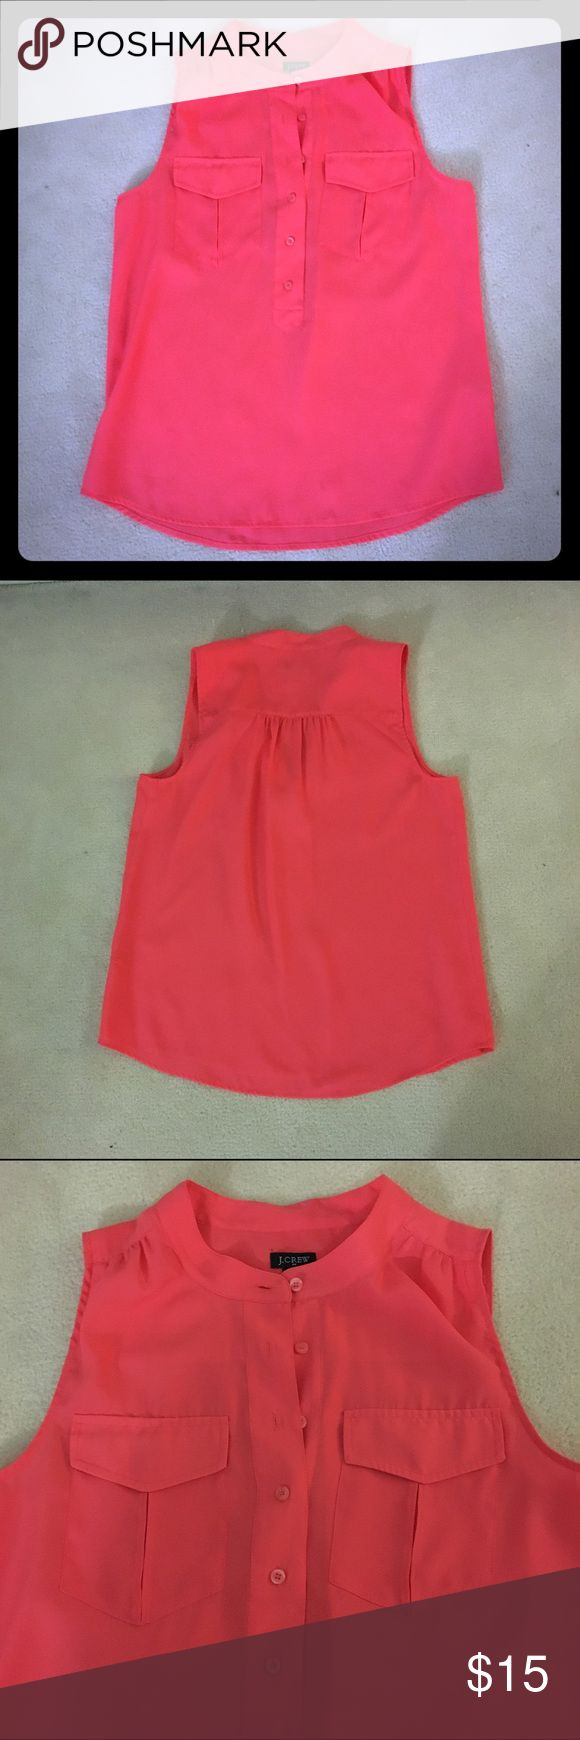 J.Crew coral blouse, sleeveless, sz 6 Coral blouse, two breast pockets, buttons up halfway, banded collar J. Crew Tops Blouses